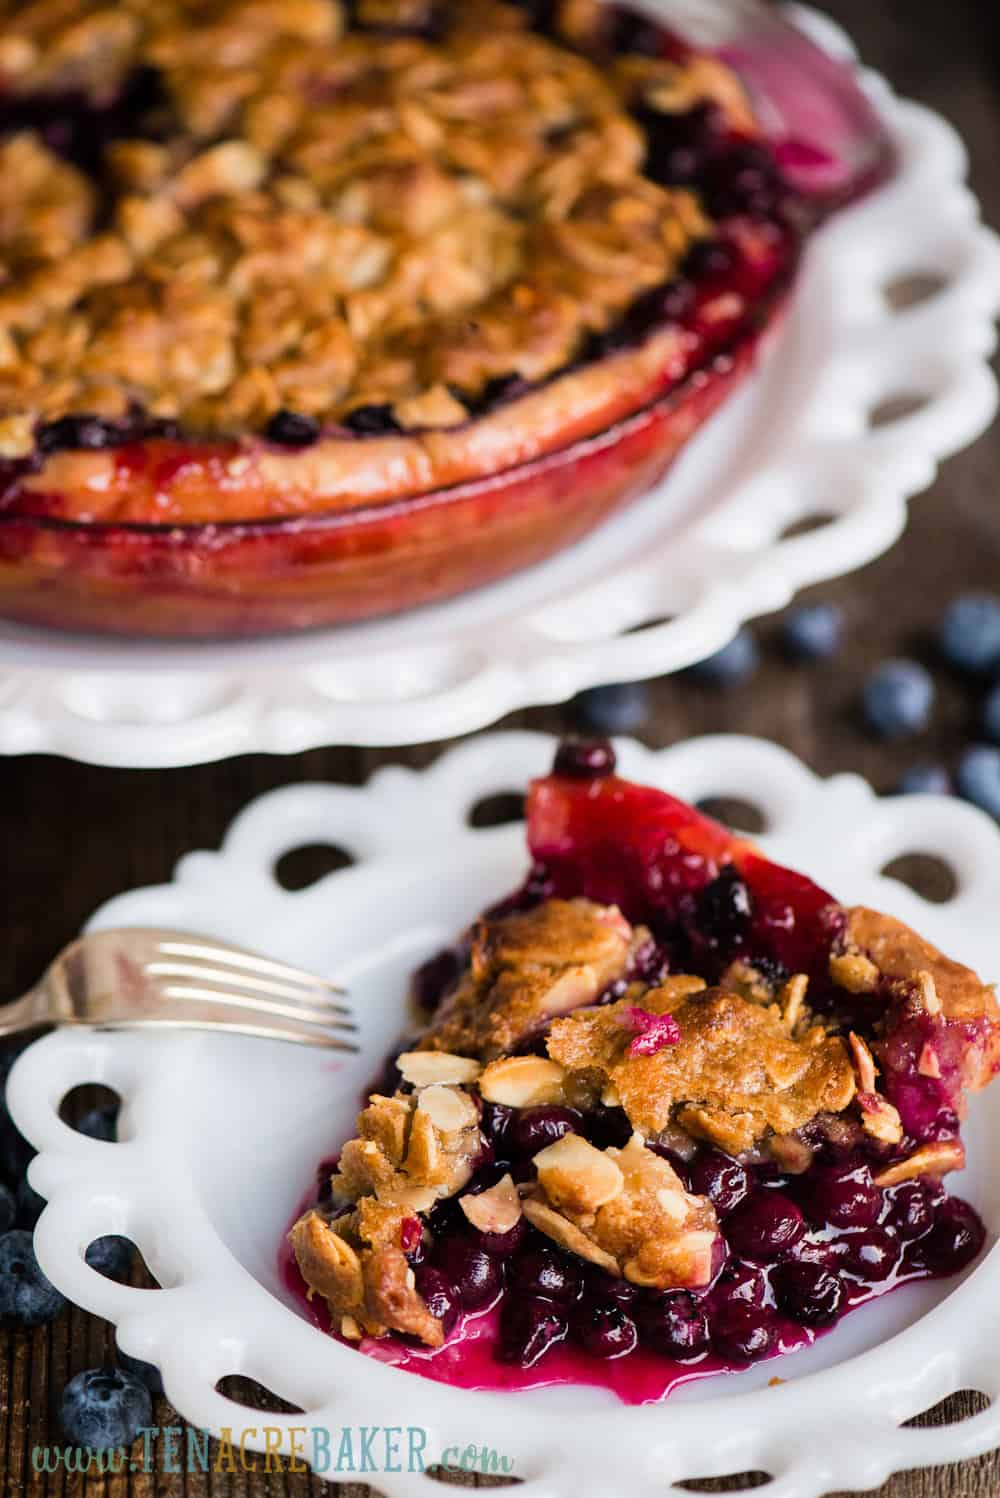 homemade bluberry pie with crumble topping